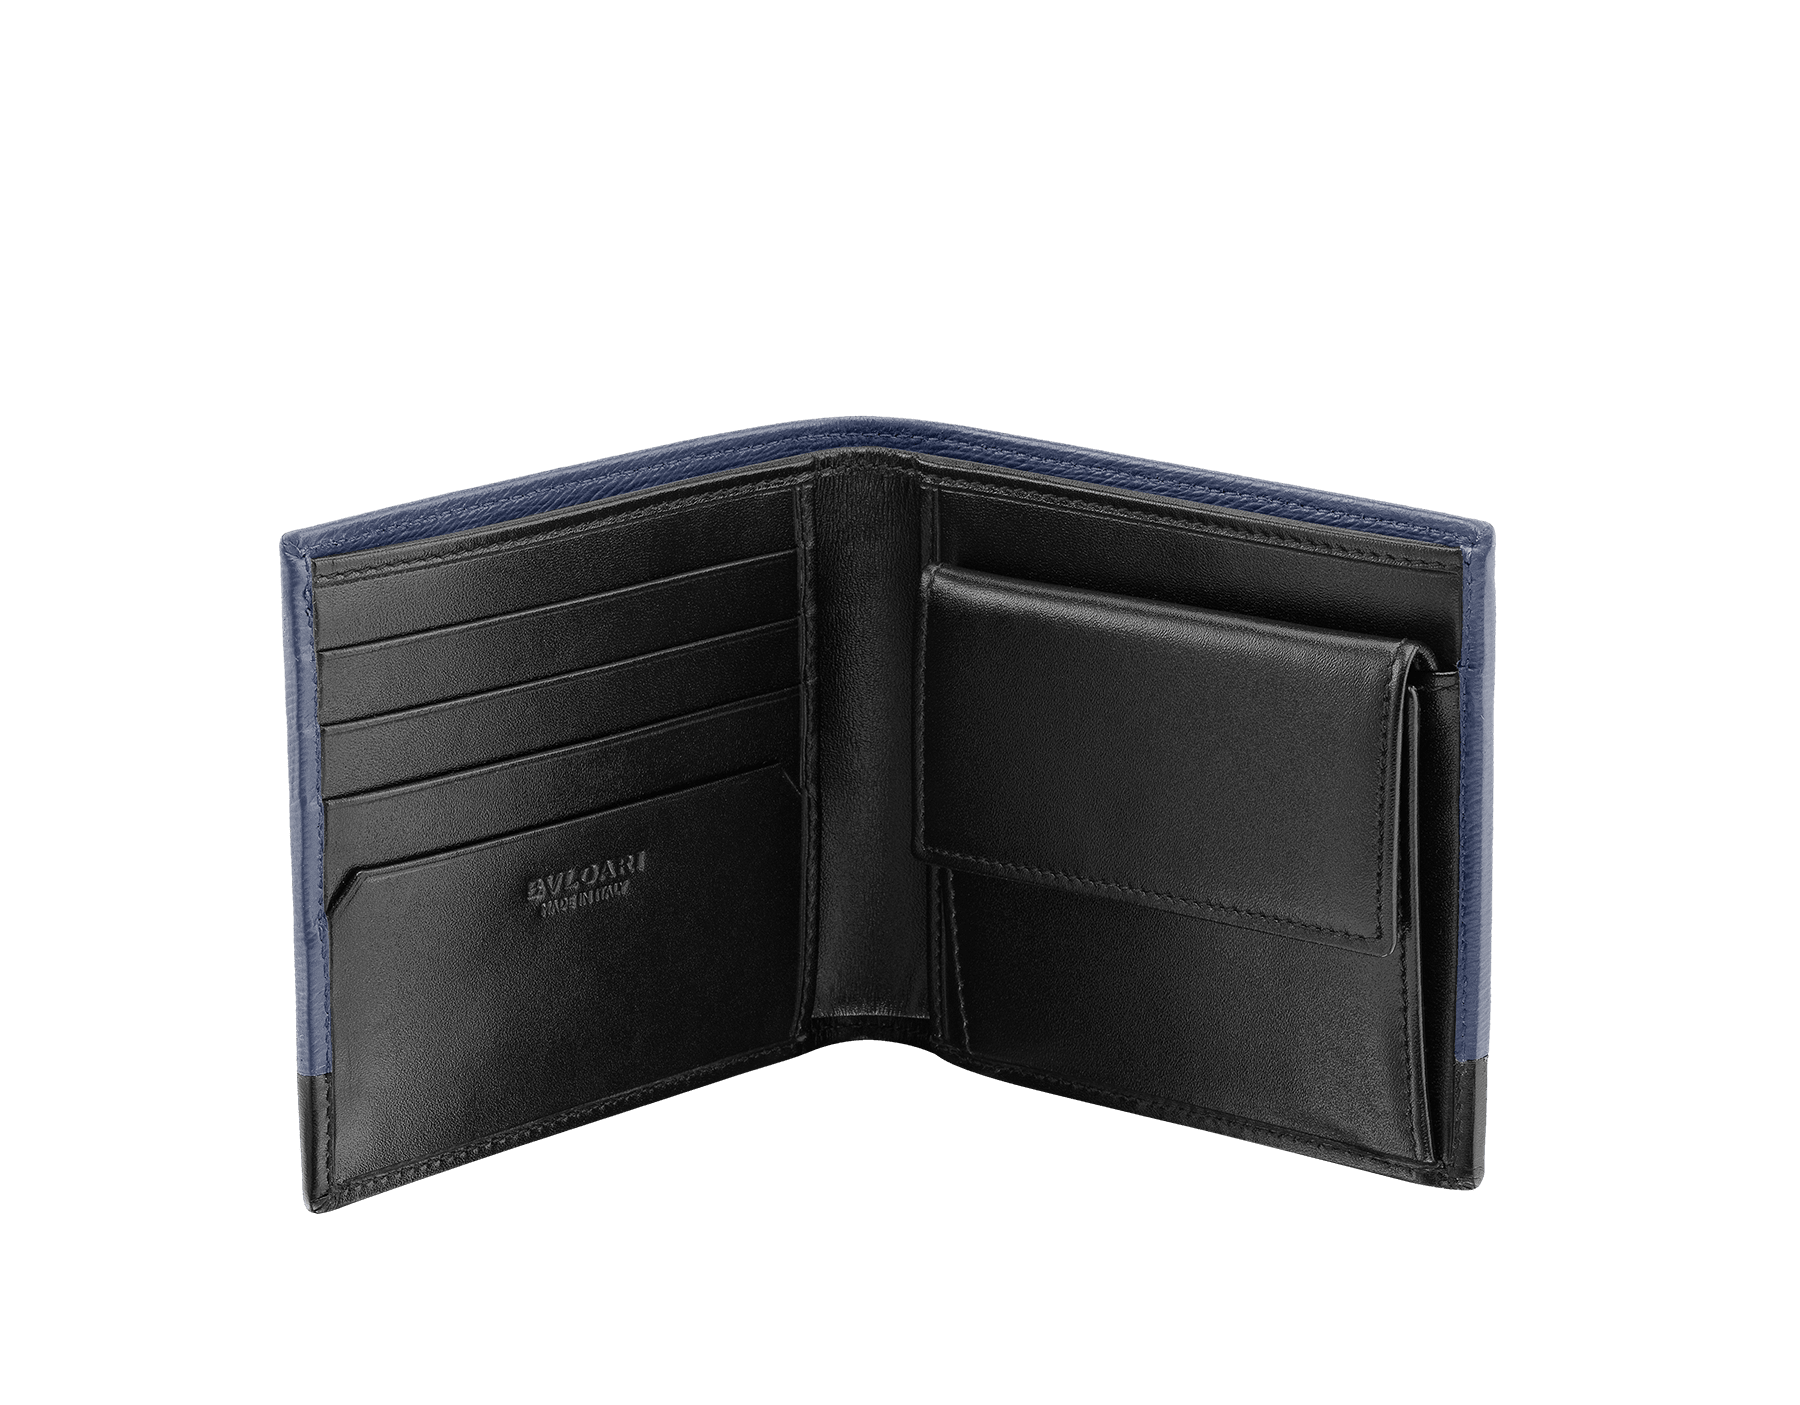 Wallet in denim sapphire grazed calf leather and black calf leather. Bulgari logo on metal plate featuring the Scaglie motif finished in dark ruthenium. 280901 image 2